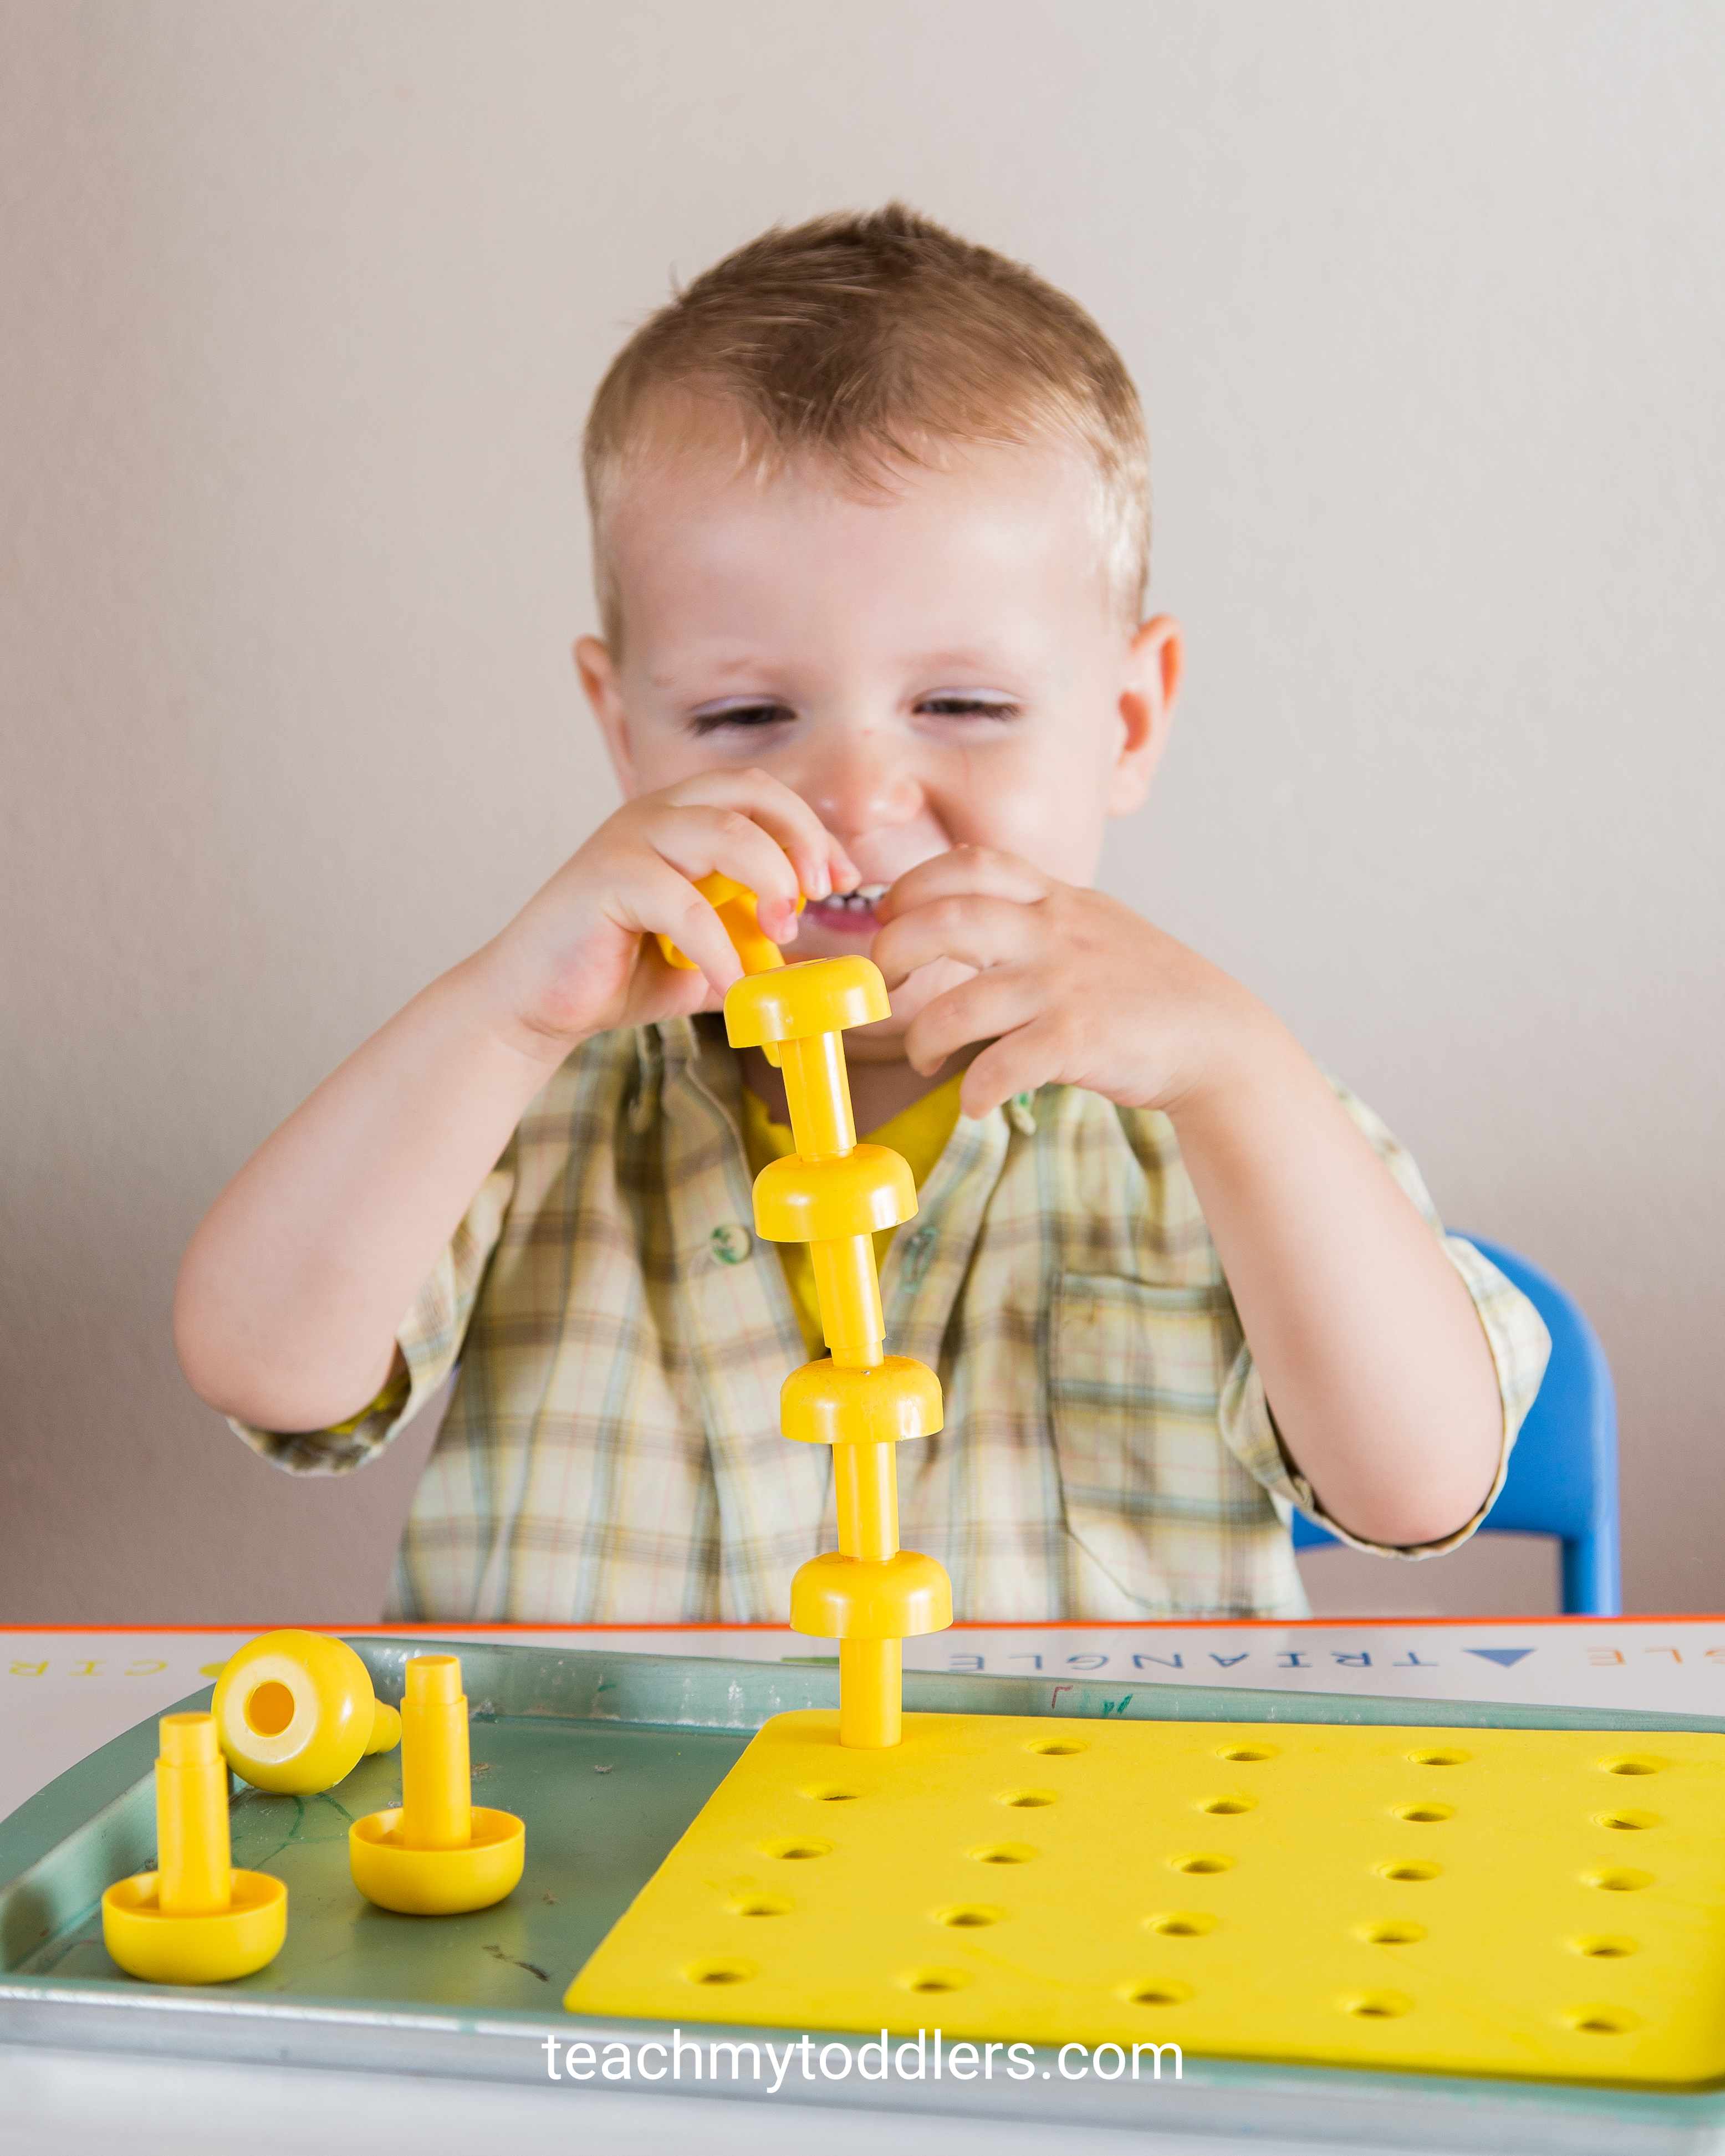 Discover how to use these yellow tot trays to teach toddlers the color yellow